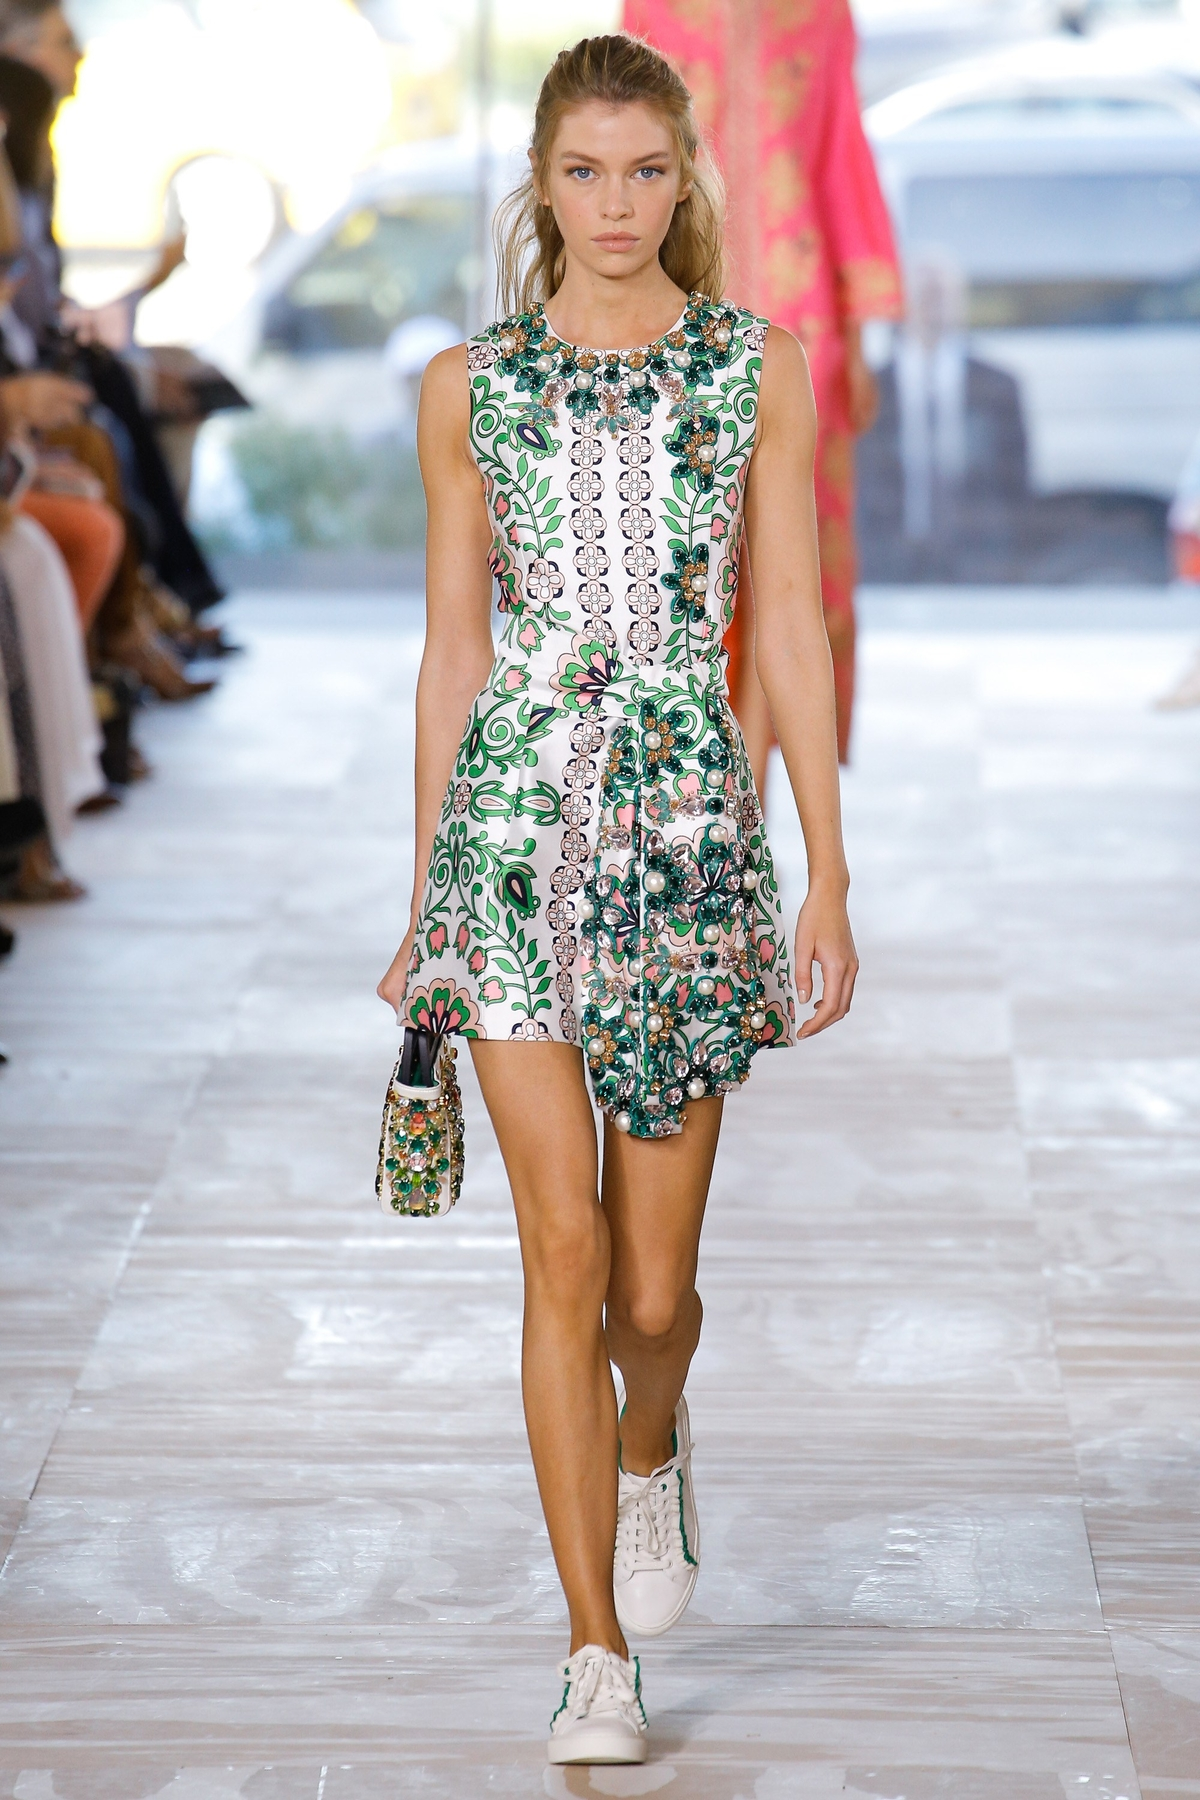 Tory Burch Fashion Show, Ready to Wear Collection Spring Summer 2017 in New York